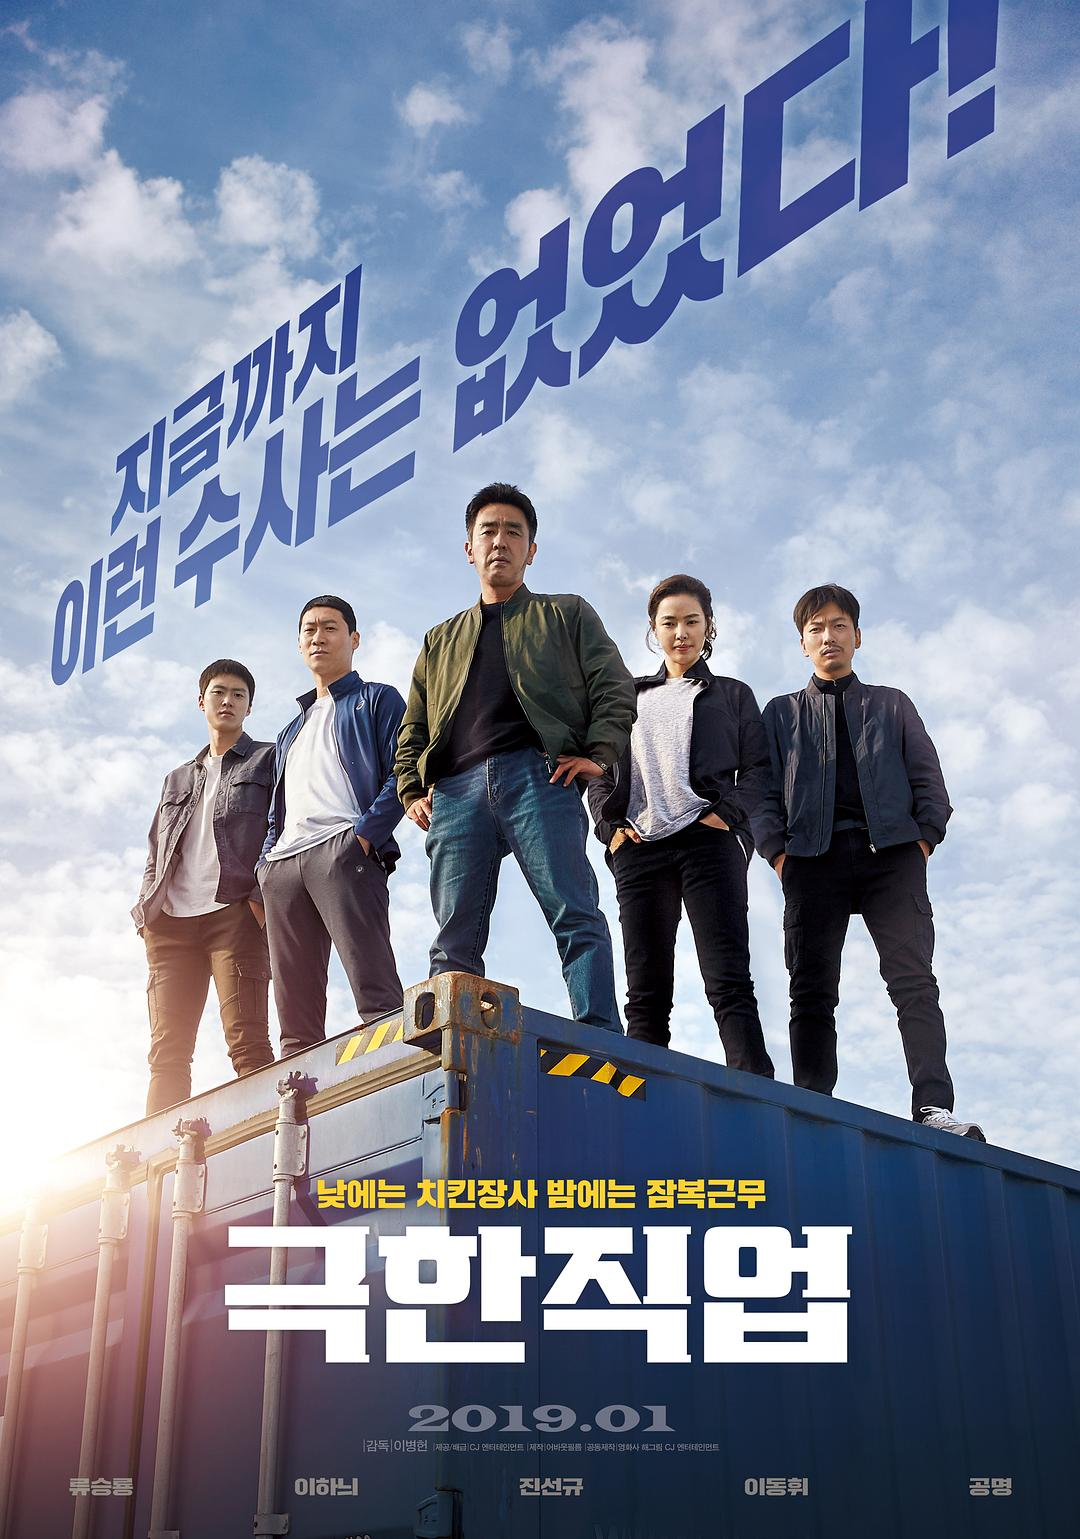 悠悠MP4_MP4电影下载_极限职业 Extreme.Job.2019.KOREAN.1080p.BluRay.x264.DTS-CHD 9.78GB